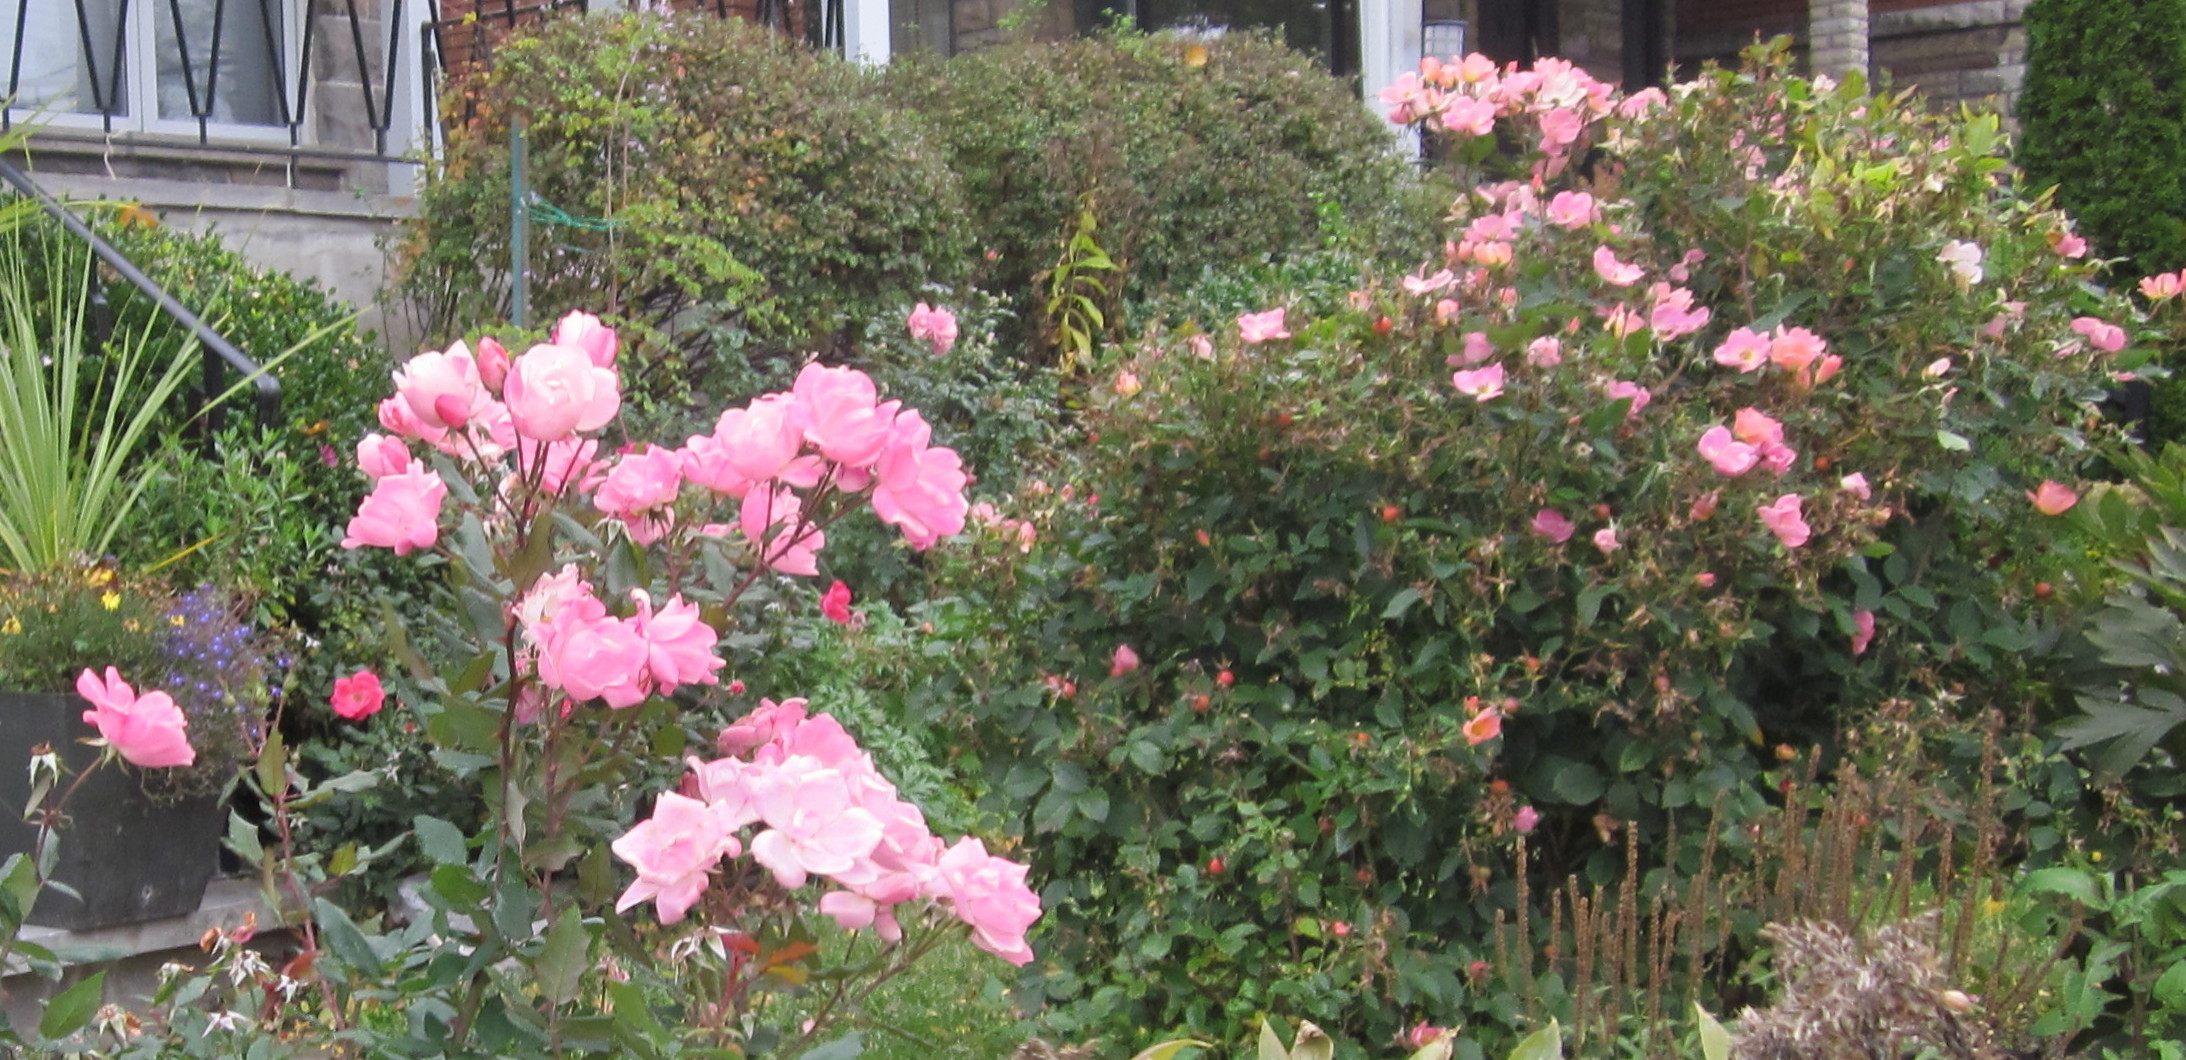 Everyone loves roses - especially when the're easy-care